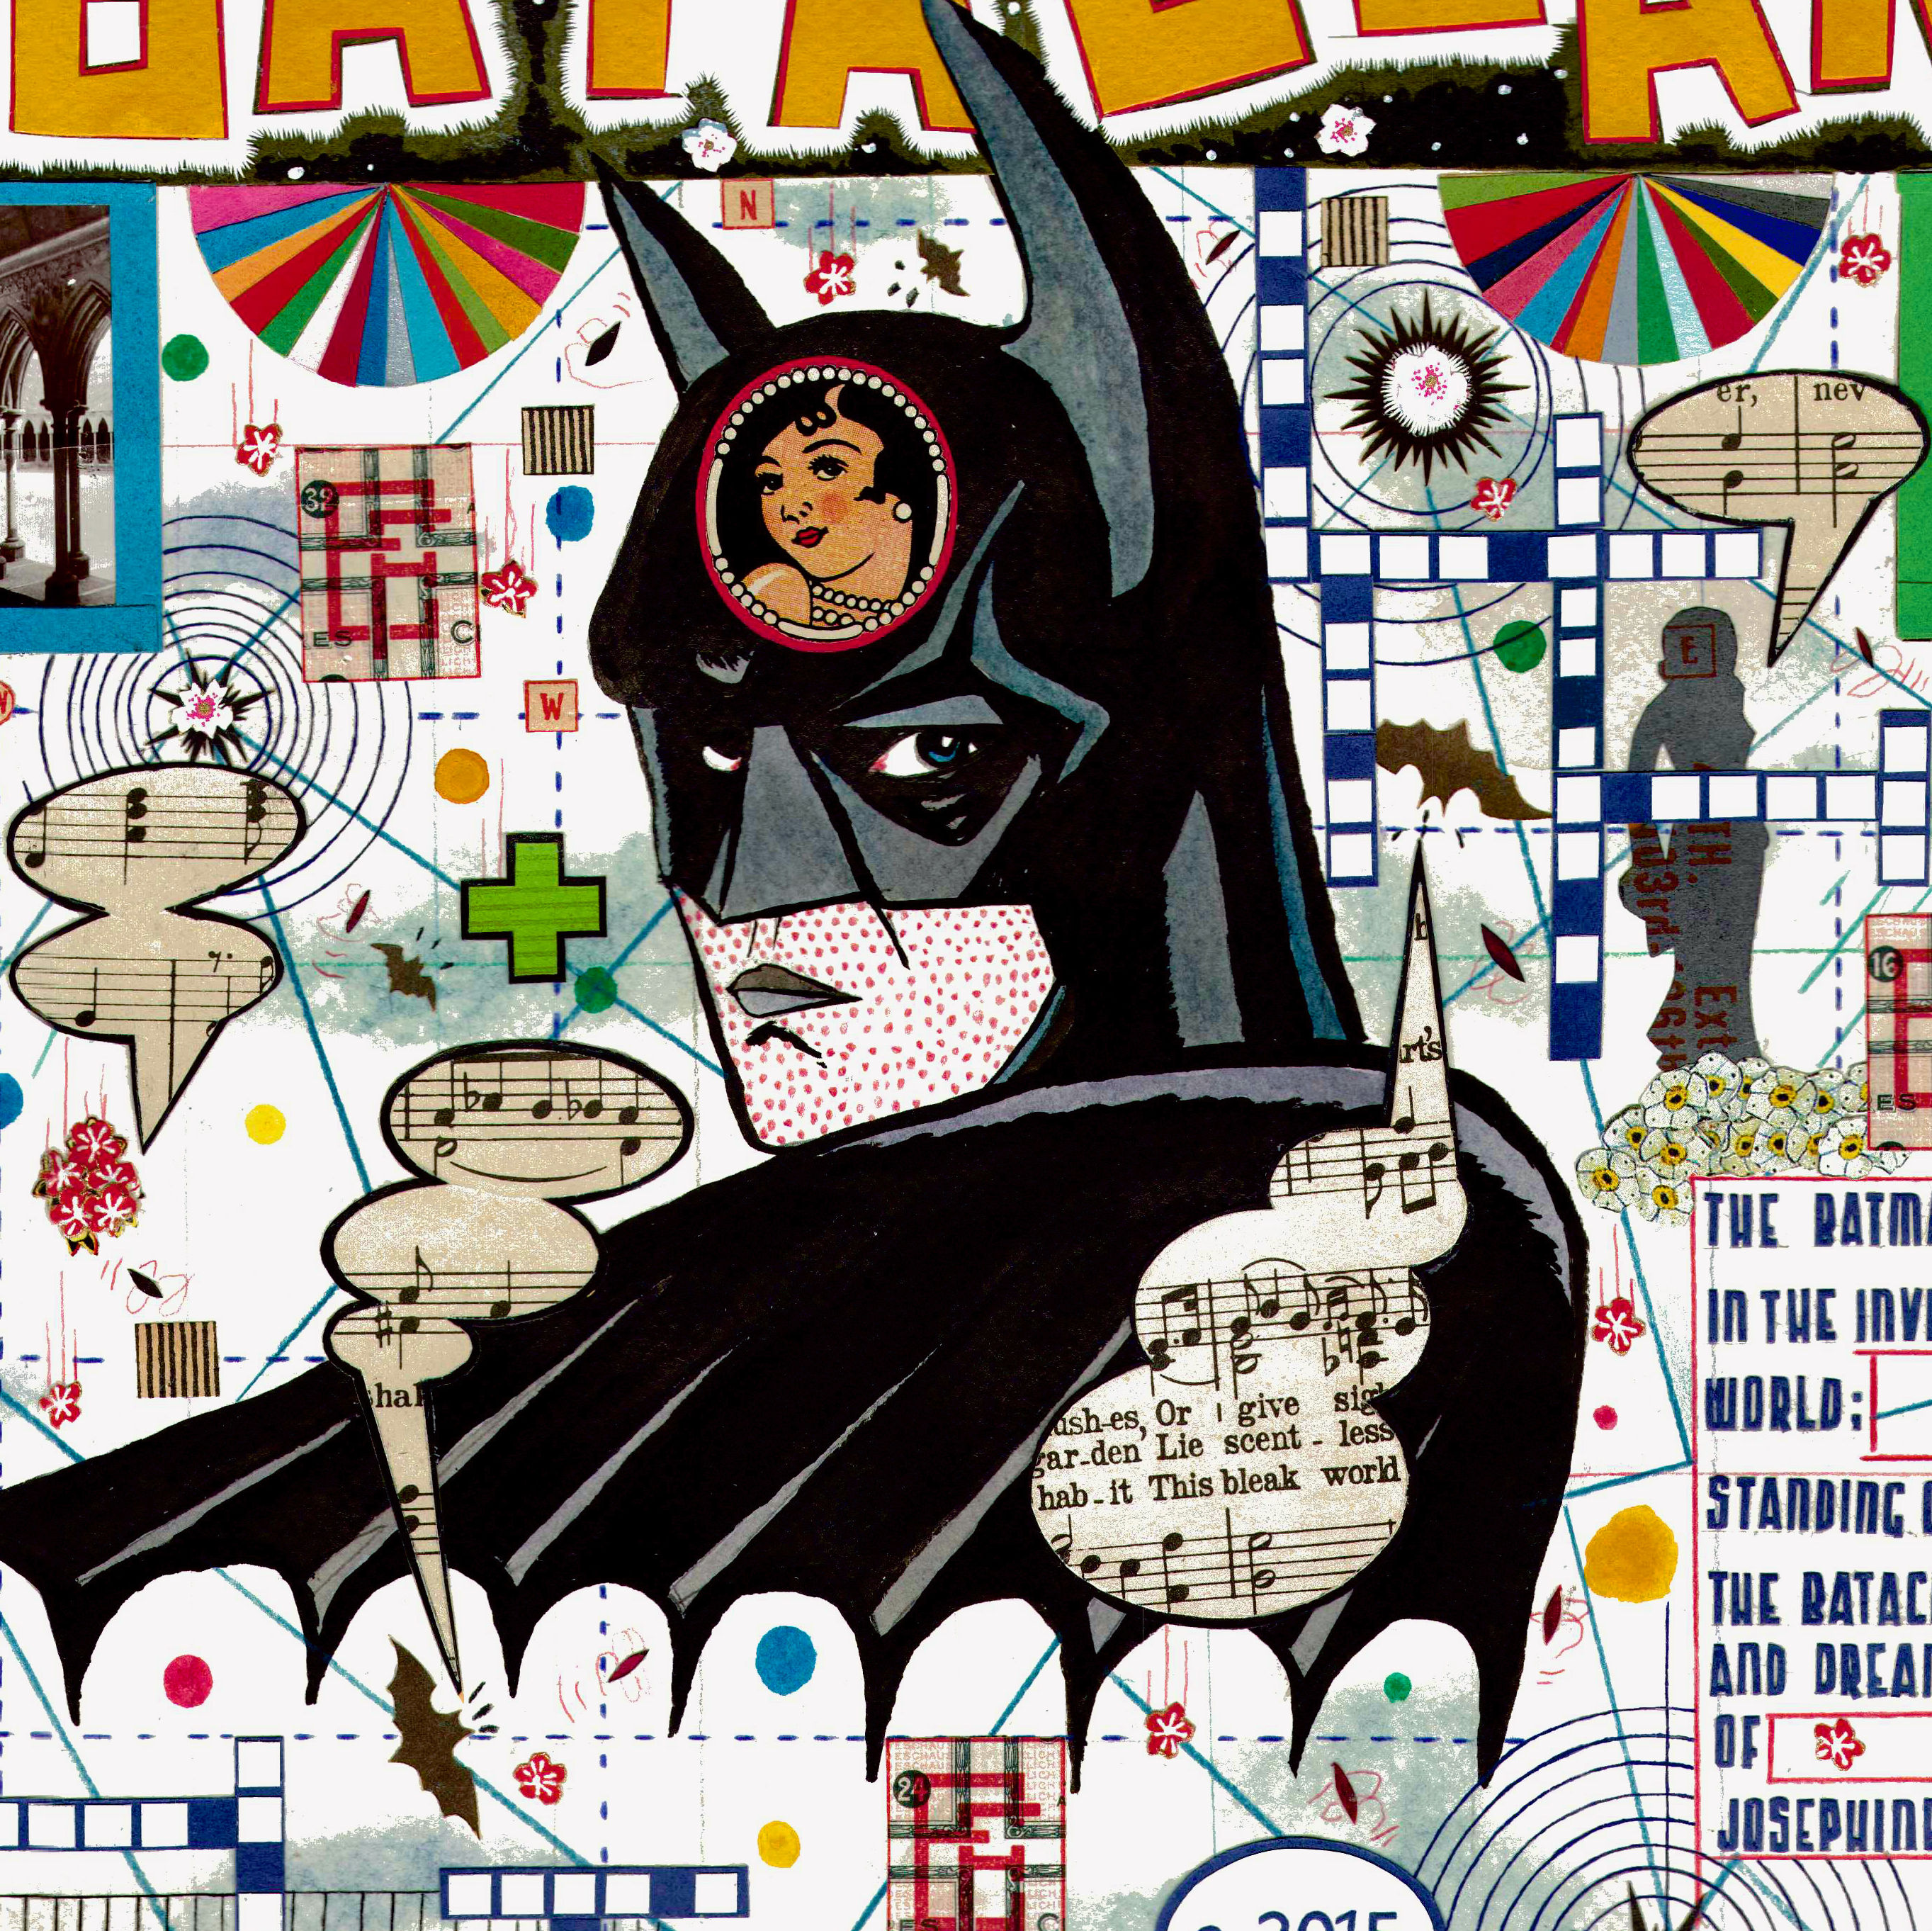 Tony fitzpatrick   the batman  in the invisible world  standing guard  2015  collage yj1x7y